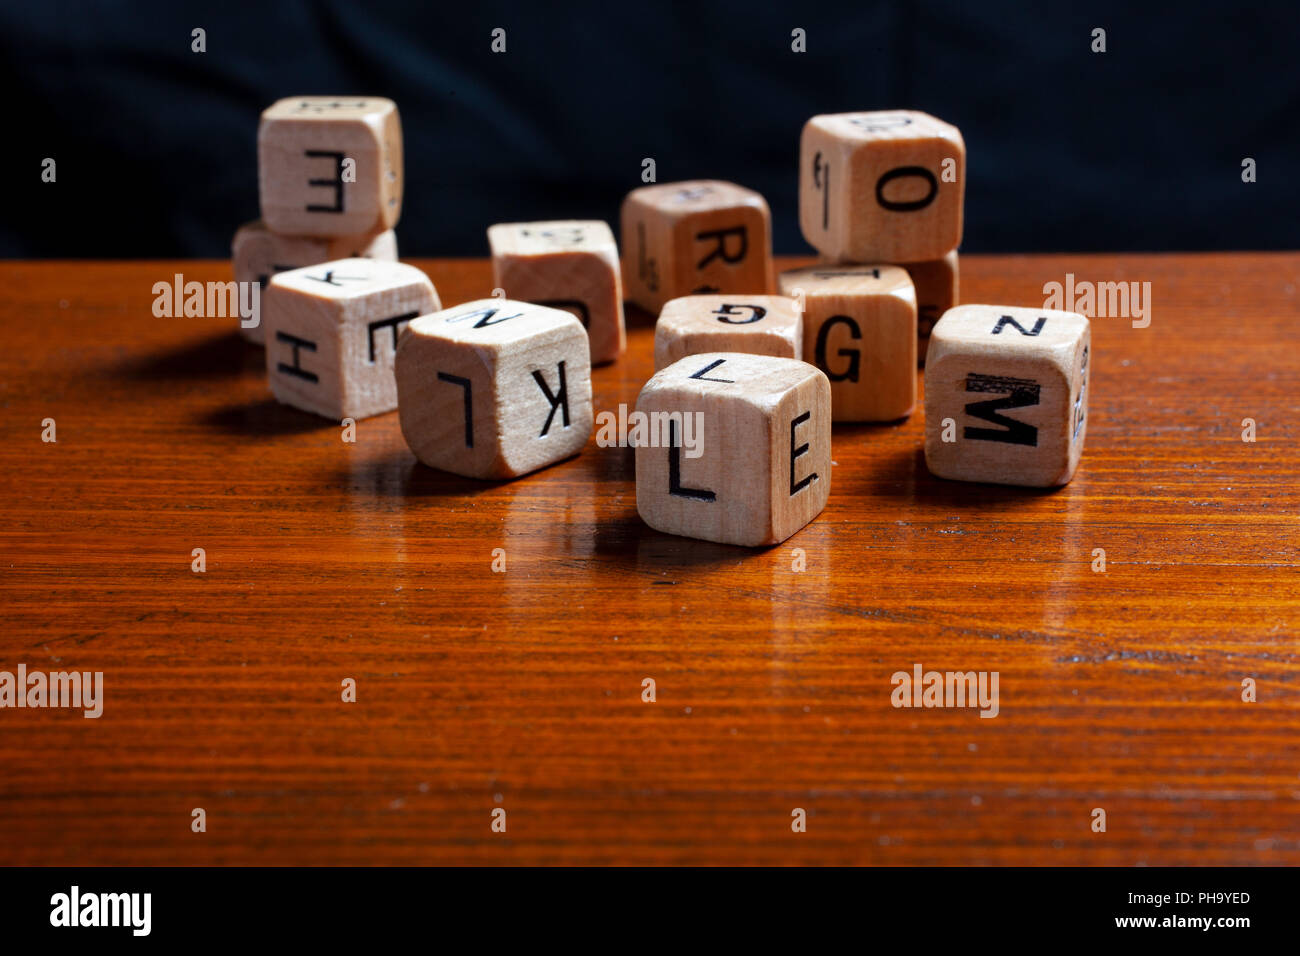 wooden letter dices - Stock Image